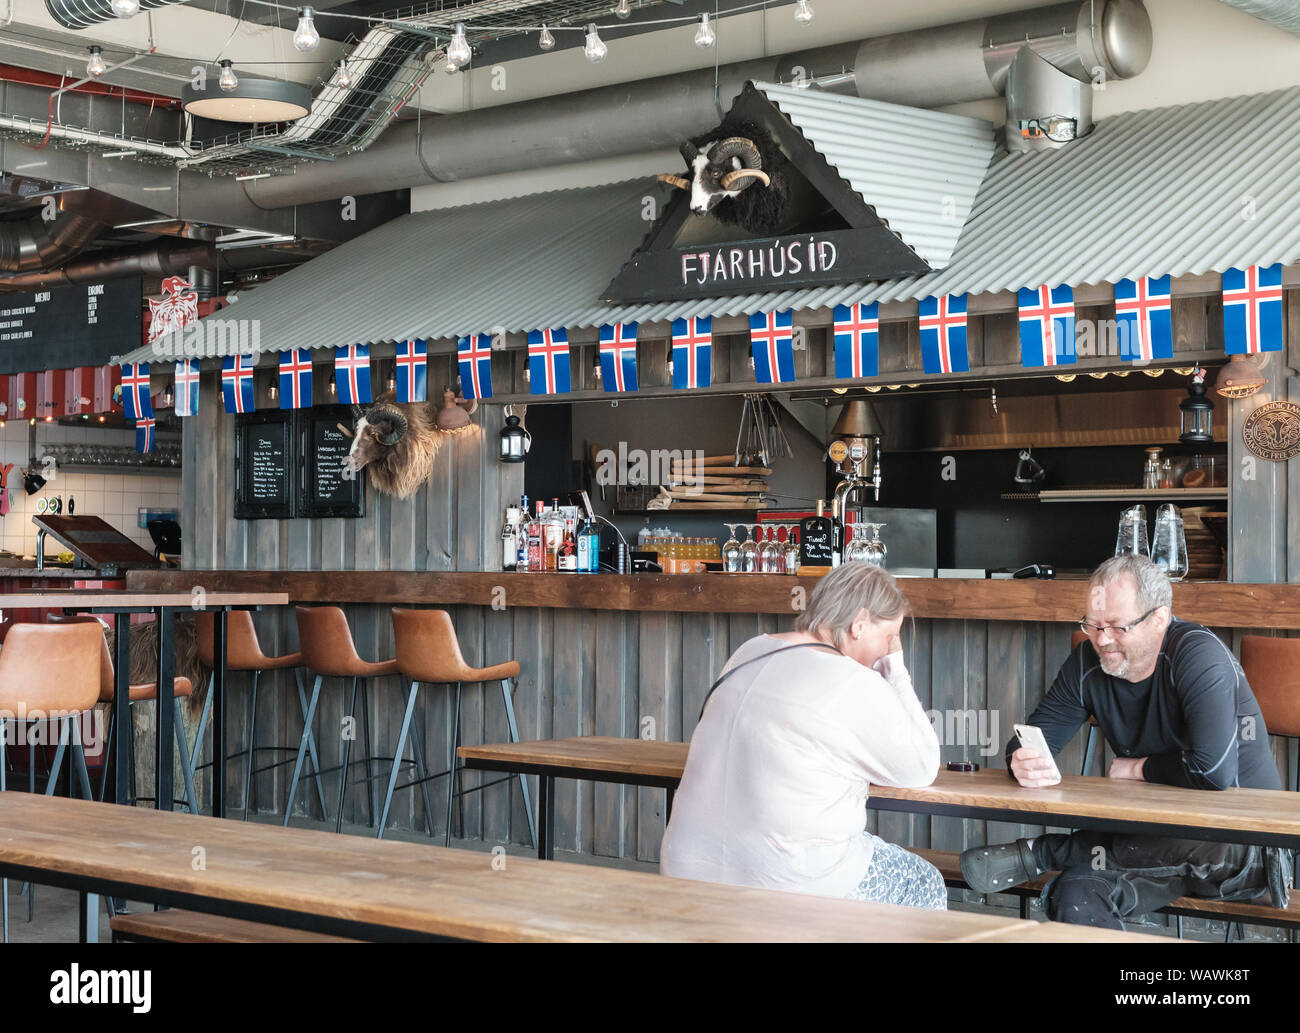 Street food stalls at the Grandi Matholl Food Hall in the old harbour district of Reykjavik, Iceland Stock Photo